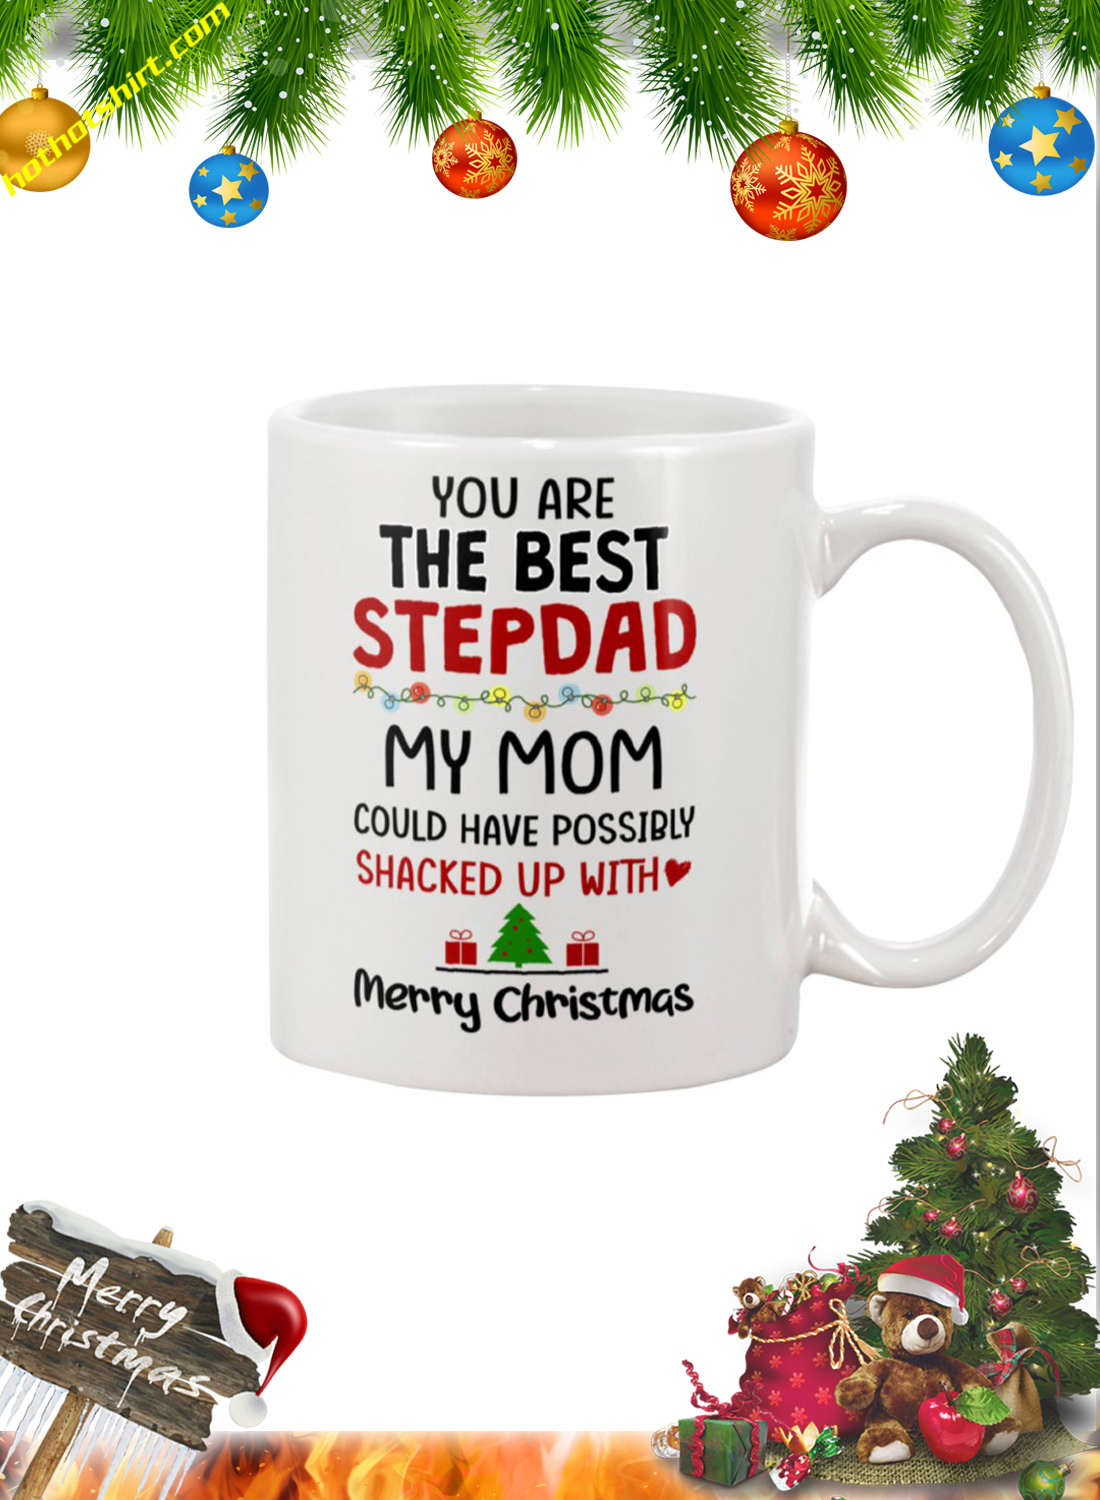 You are the best stepdad my mom merry christmas mug 1